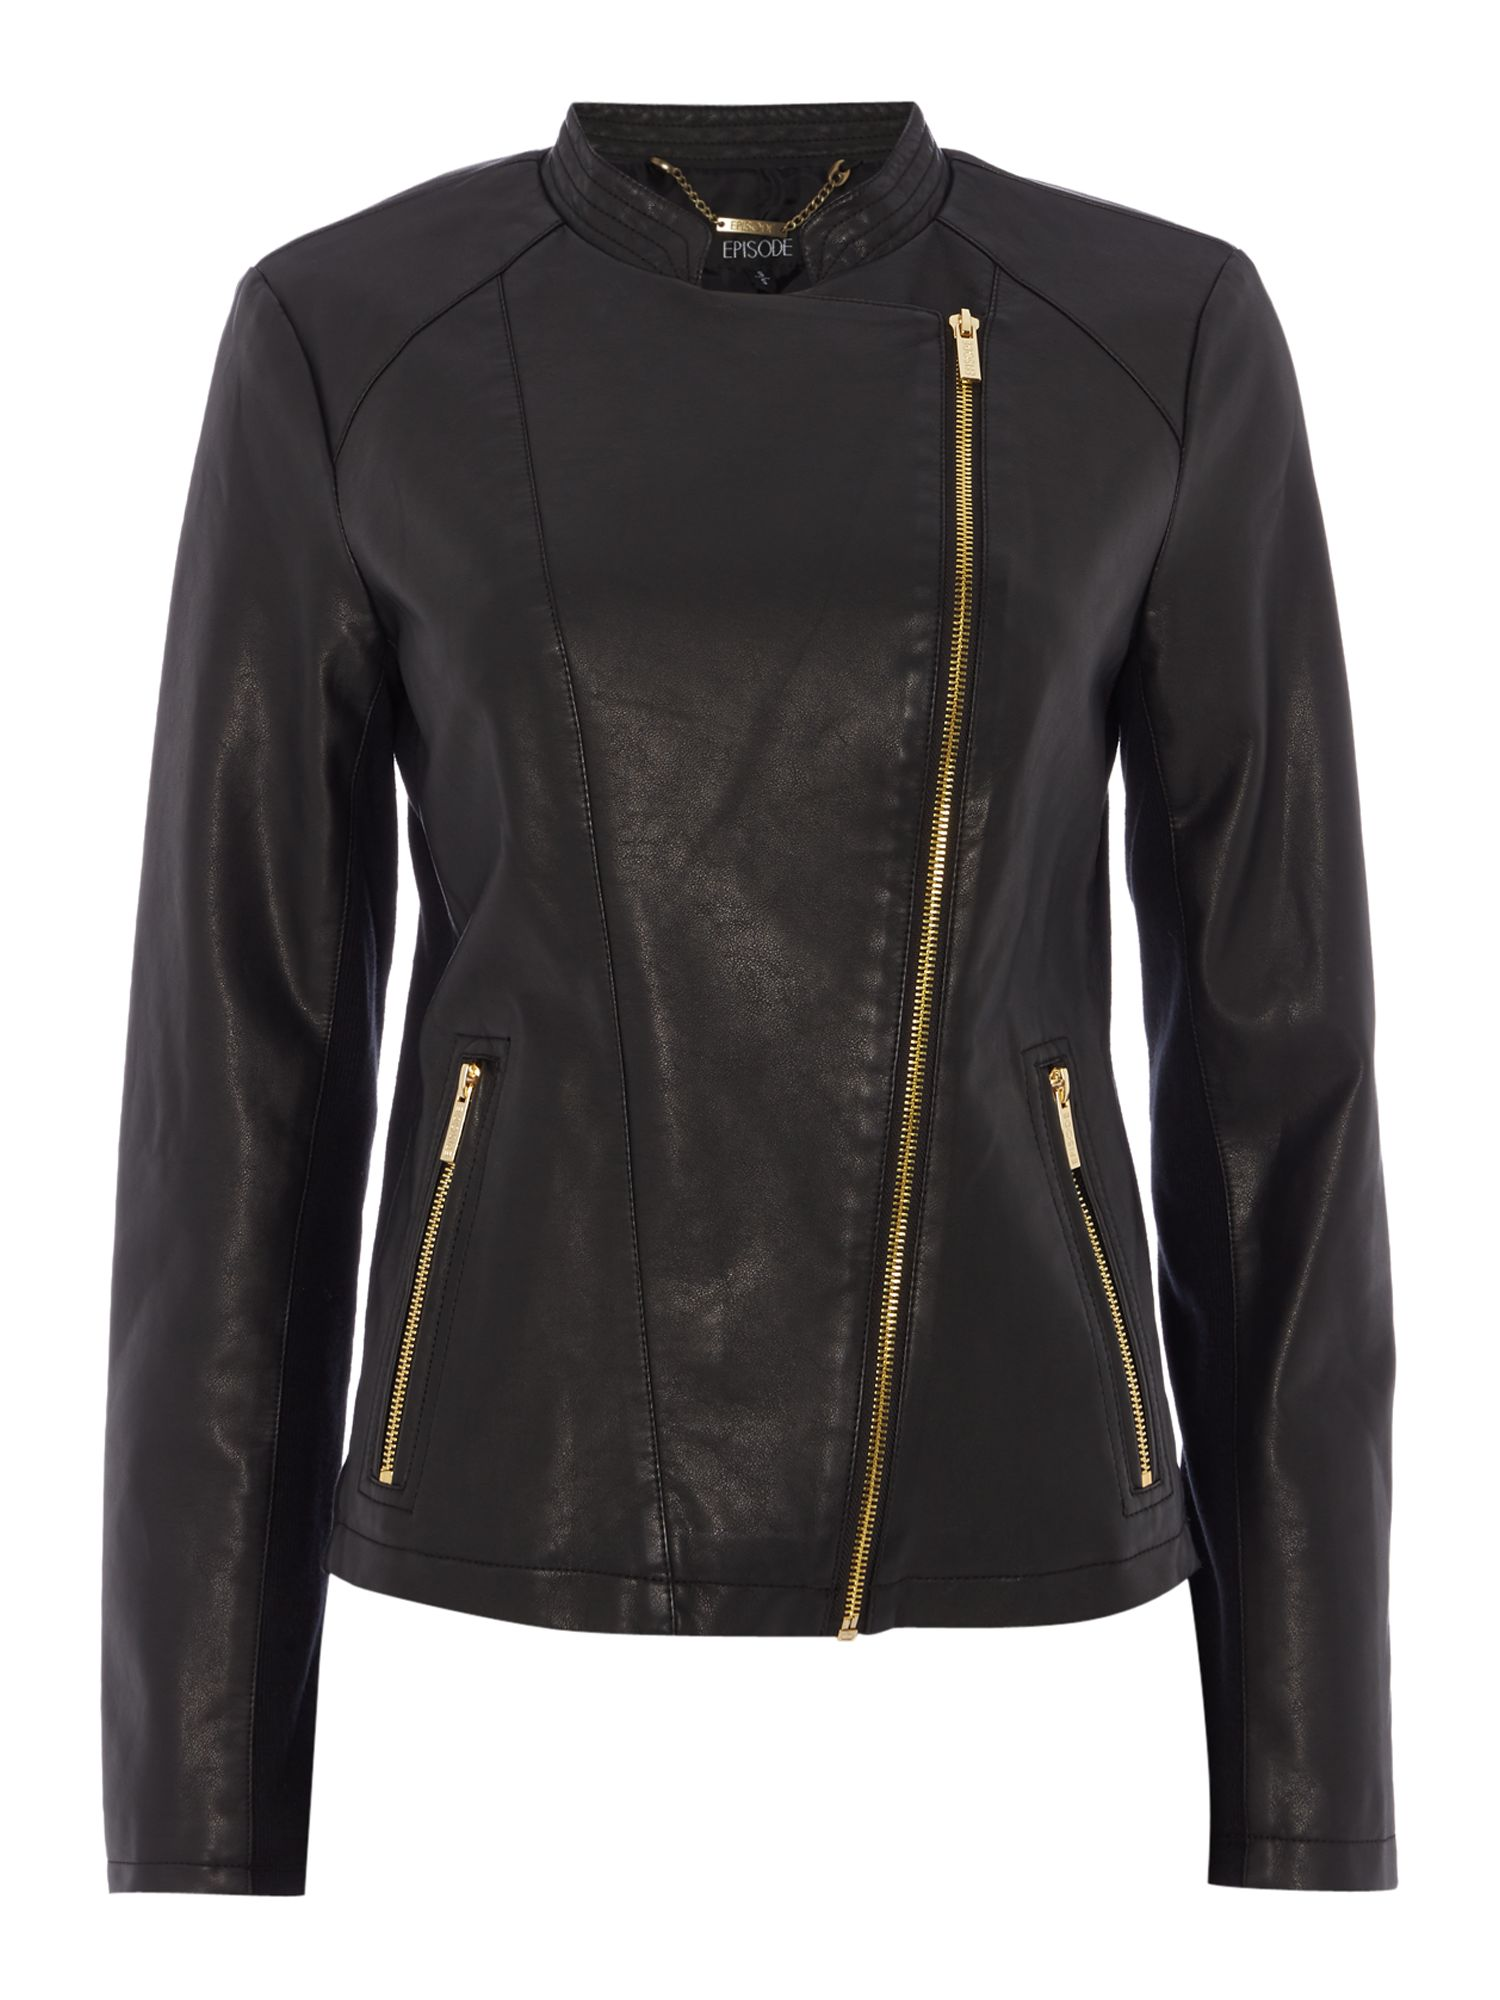 Episode PU jacket with gold hardware, Black